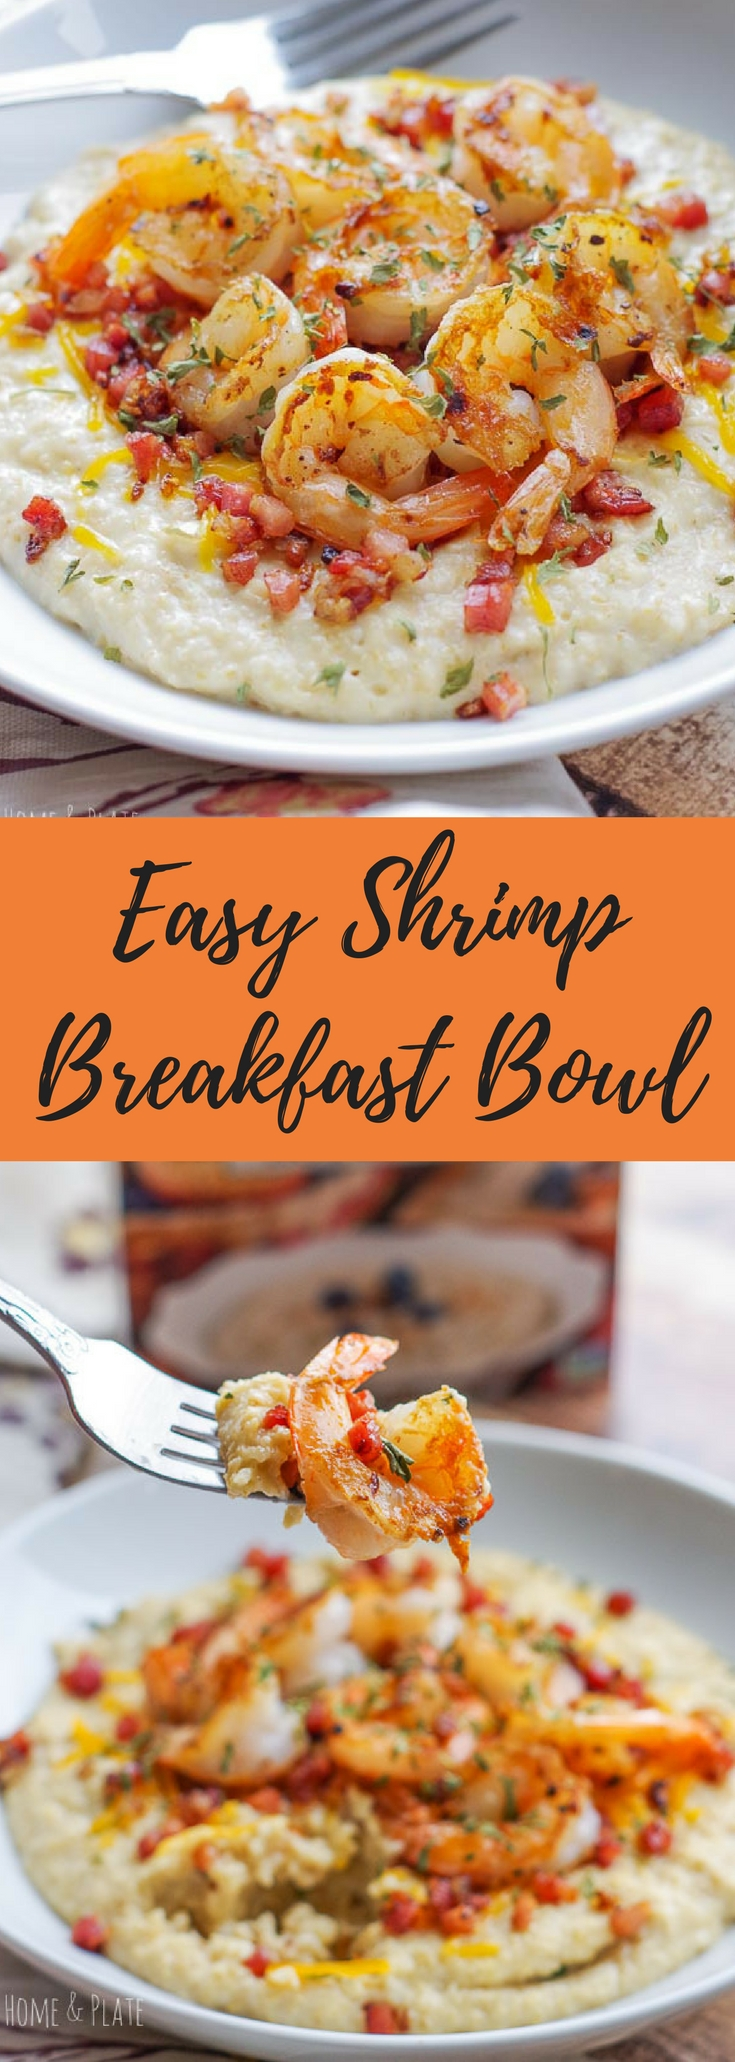 "#ad | Shrimp Breakfast Bowl | www.homeandplate.com | Serve up my version of shrimp and ""grits"" to start the morning with this easy and savory breakfast bowl. #oatbran #breakfastbowl #shrimpandgrits #betterbowl18 @hodgsonmill"